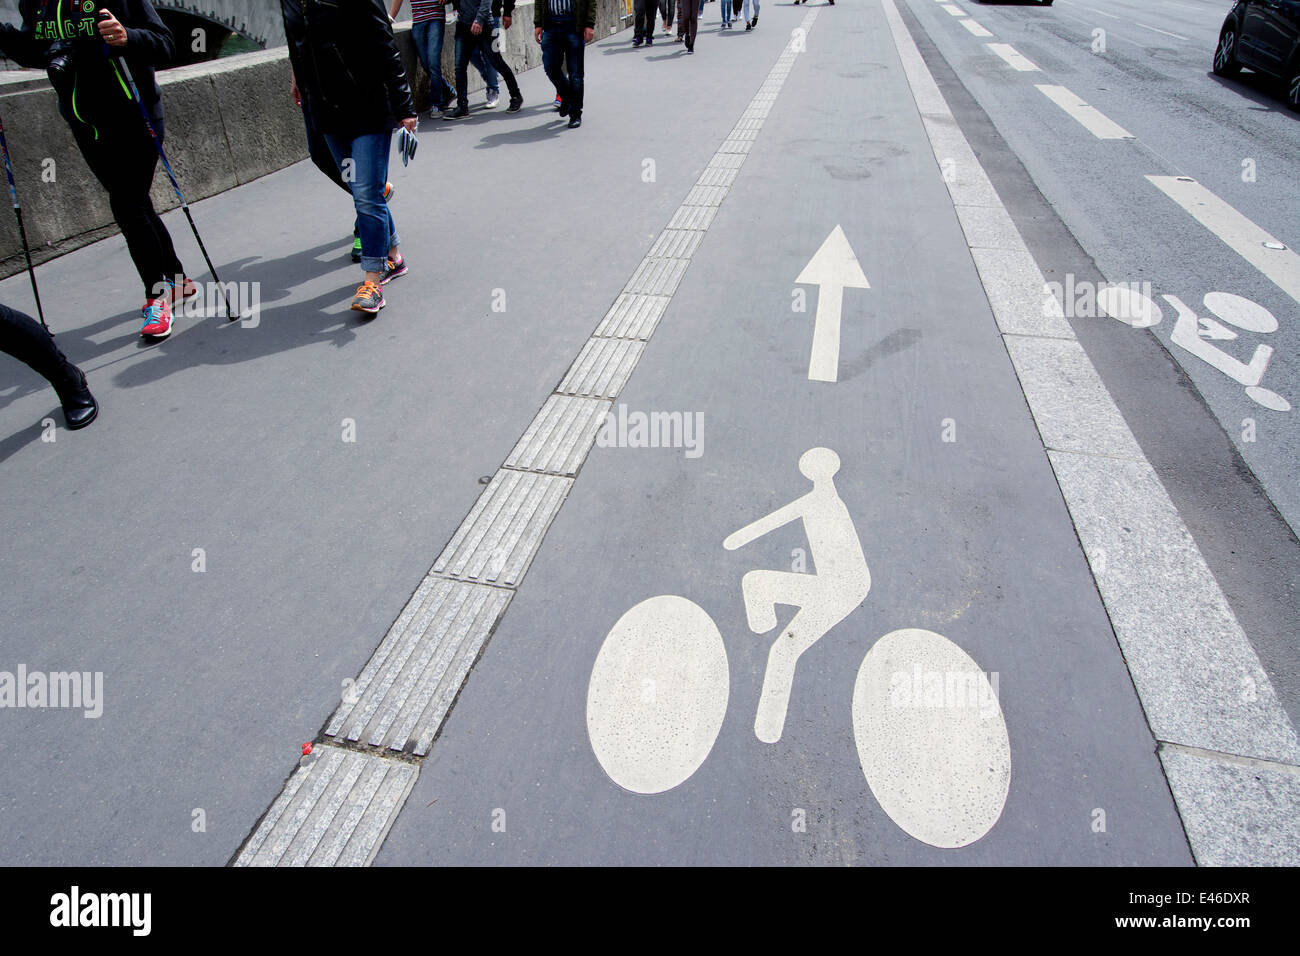 Cycle path, Paris, France - Stock Image